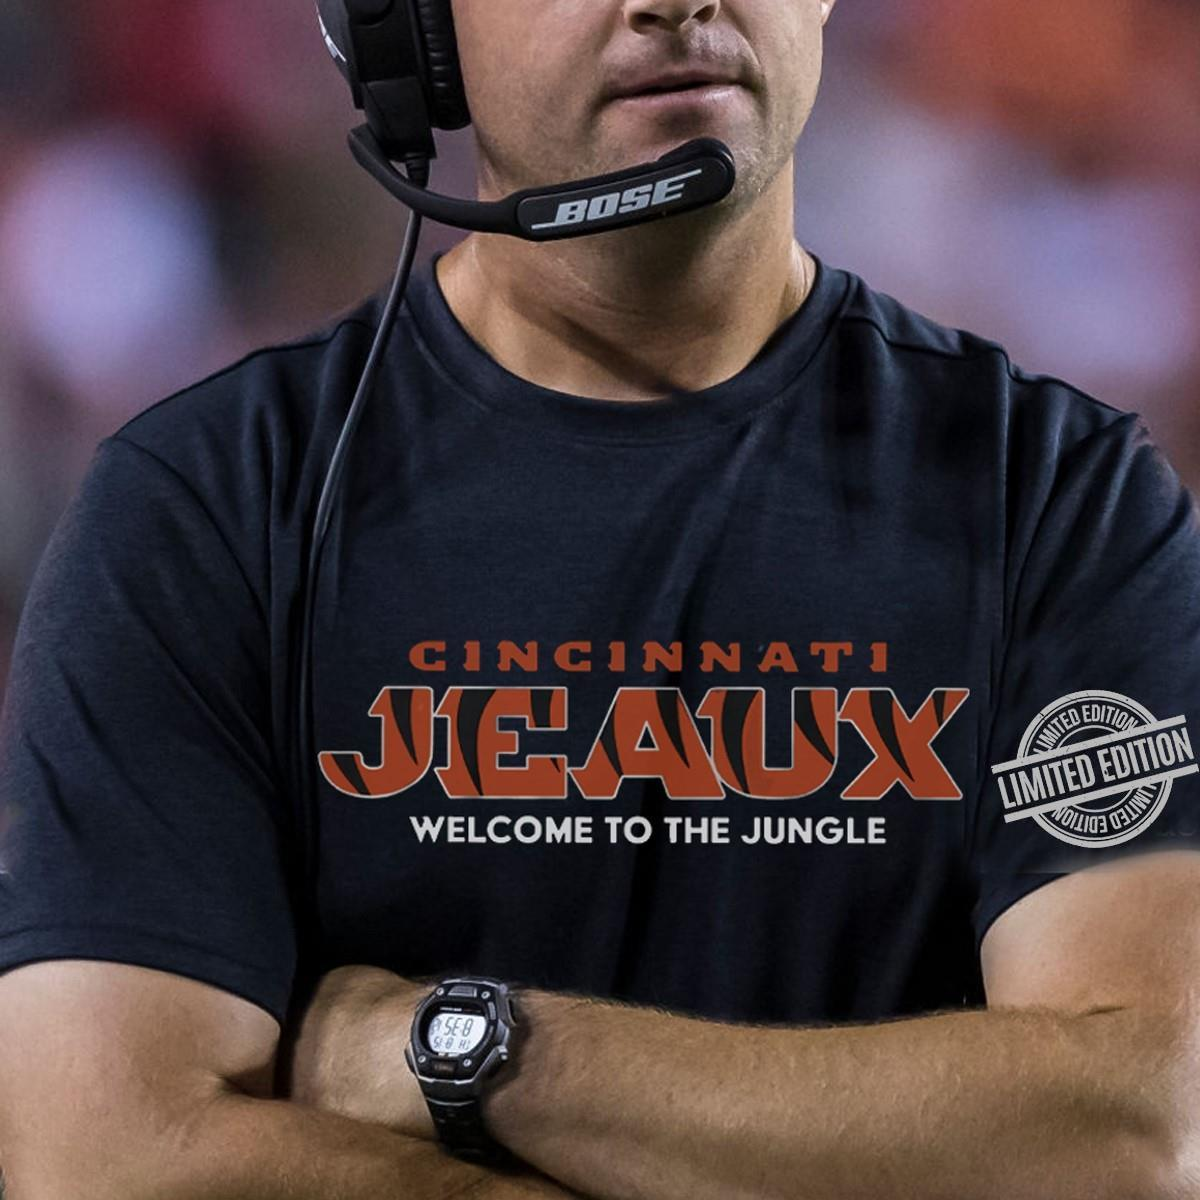 Cincinnati Jeaux Welcome To The Jungle Shirt